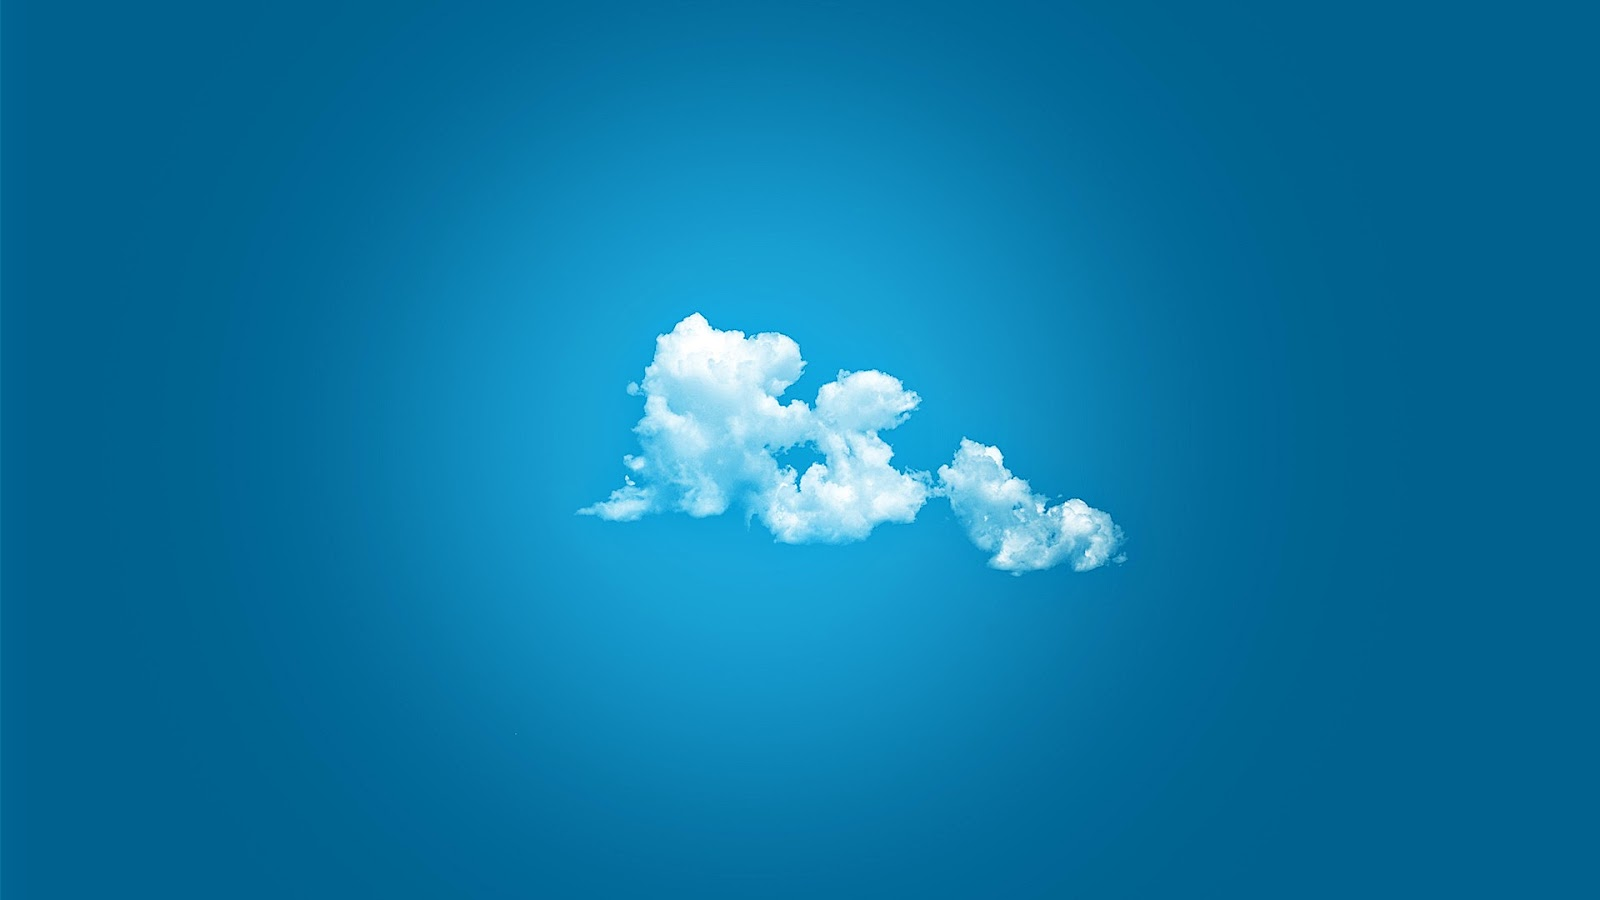 Abstract Cloudy sky hd wallpaper